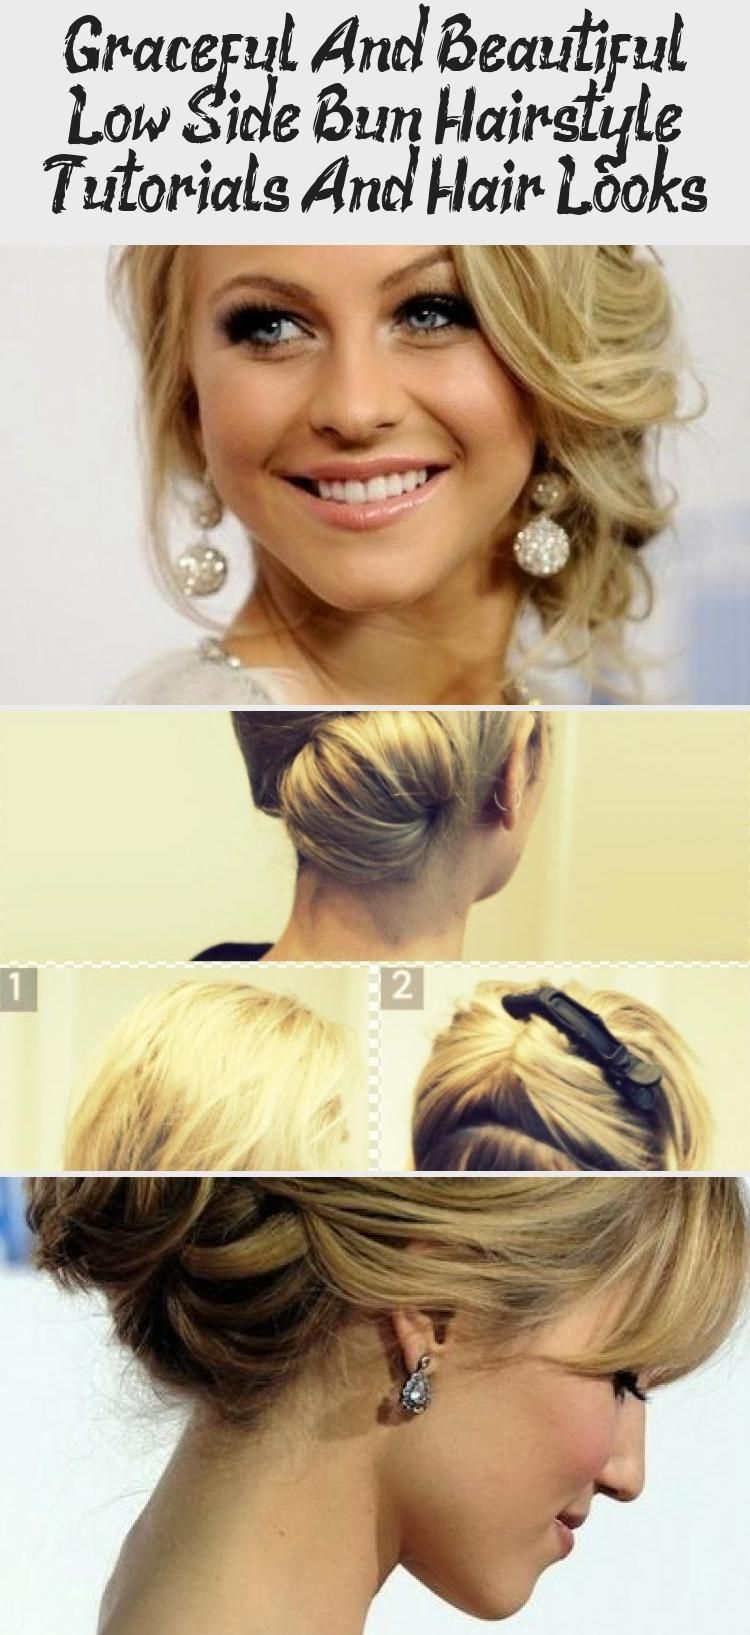 Graceful And Beautiful Low Side Bun Hairstyle Tutorials And Hair Looks #lowsidebuns Graceful Lower Side Bun Hairstyle for Women                                                                                                                                                                                 More #weddinghairsimple #bridesmaidhairCrown #bridesmaidhairLong #bridesmaidhairBrunette #bridesmaidhairHow #bridesmaidhairMiddlePart #lowsidebuns Graceful And Beautiful Low Side Bun Hairstyle Tut #lowsidebuns